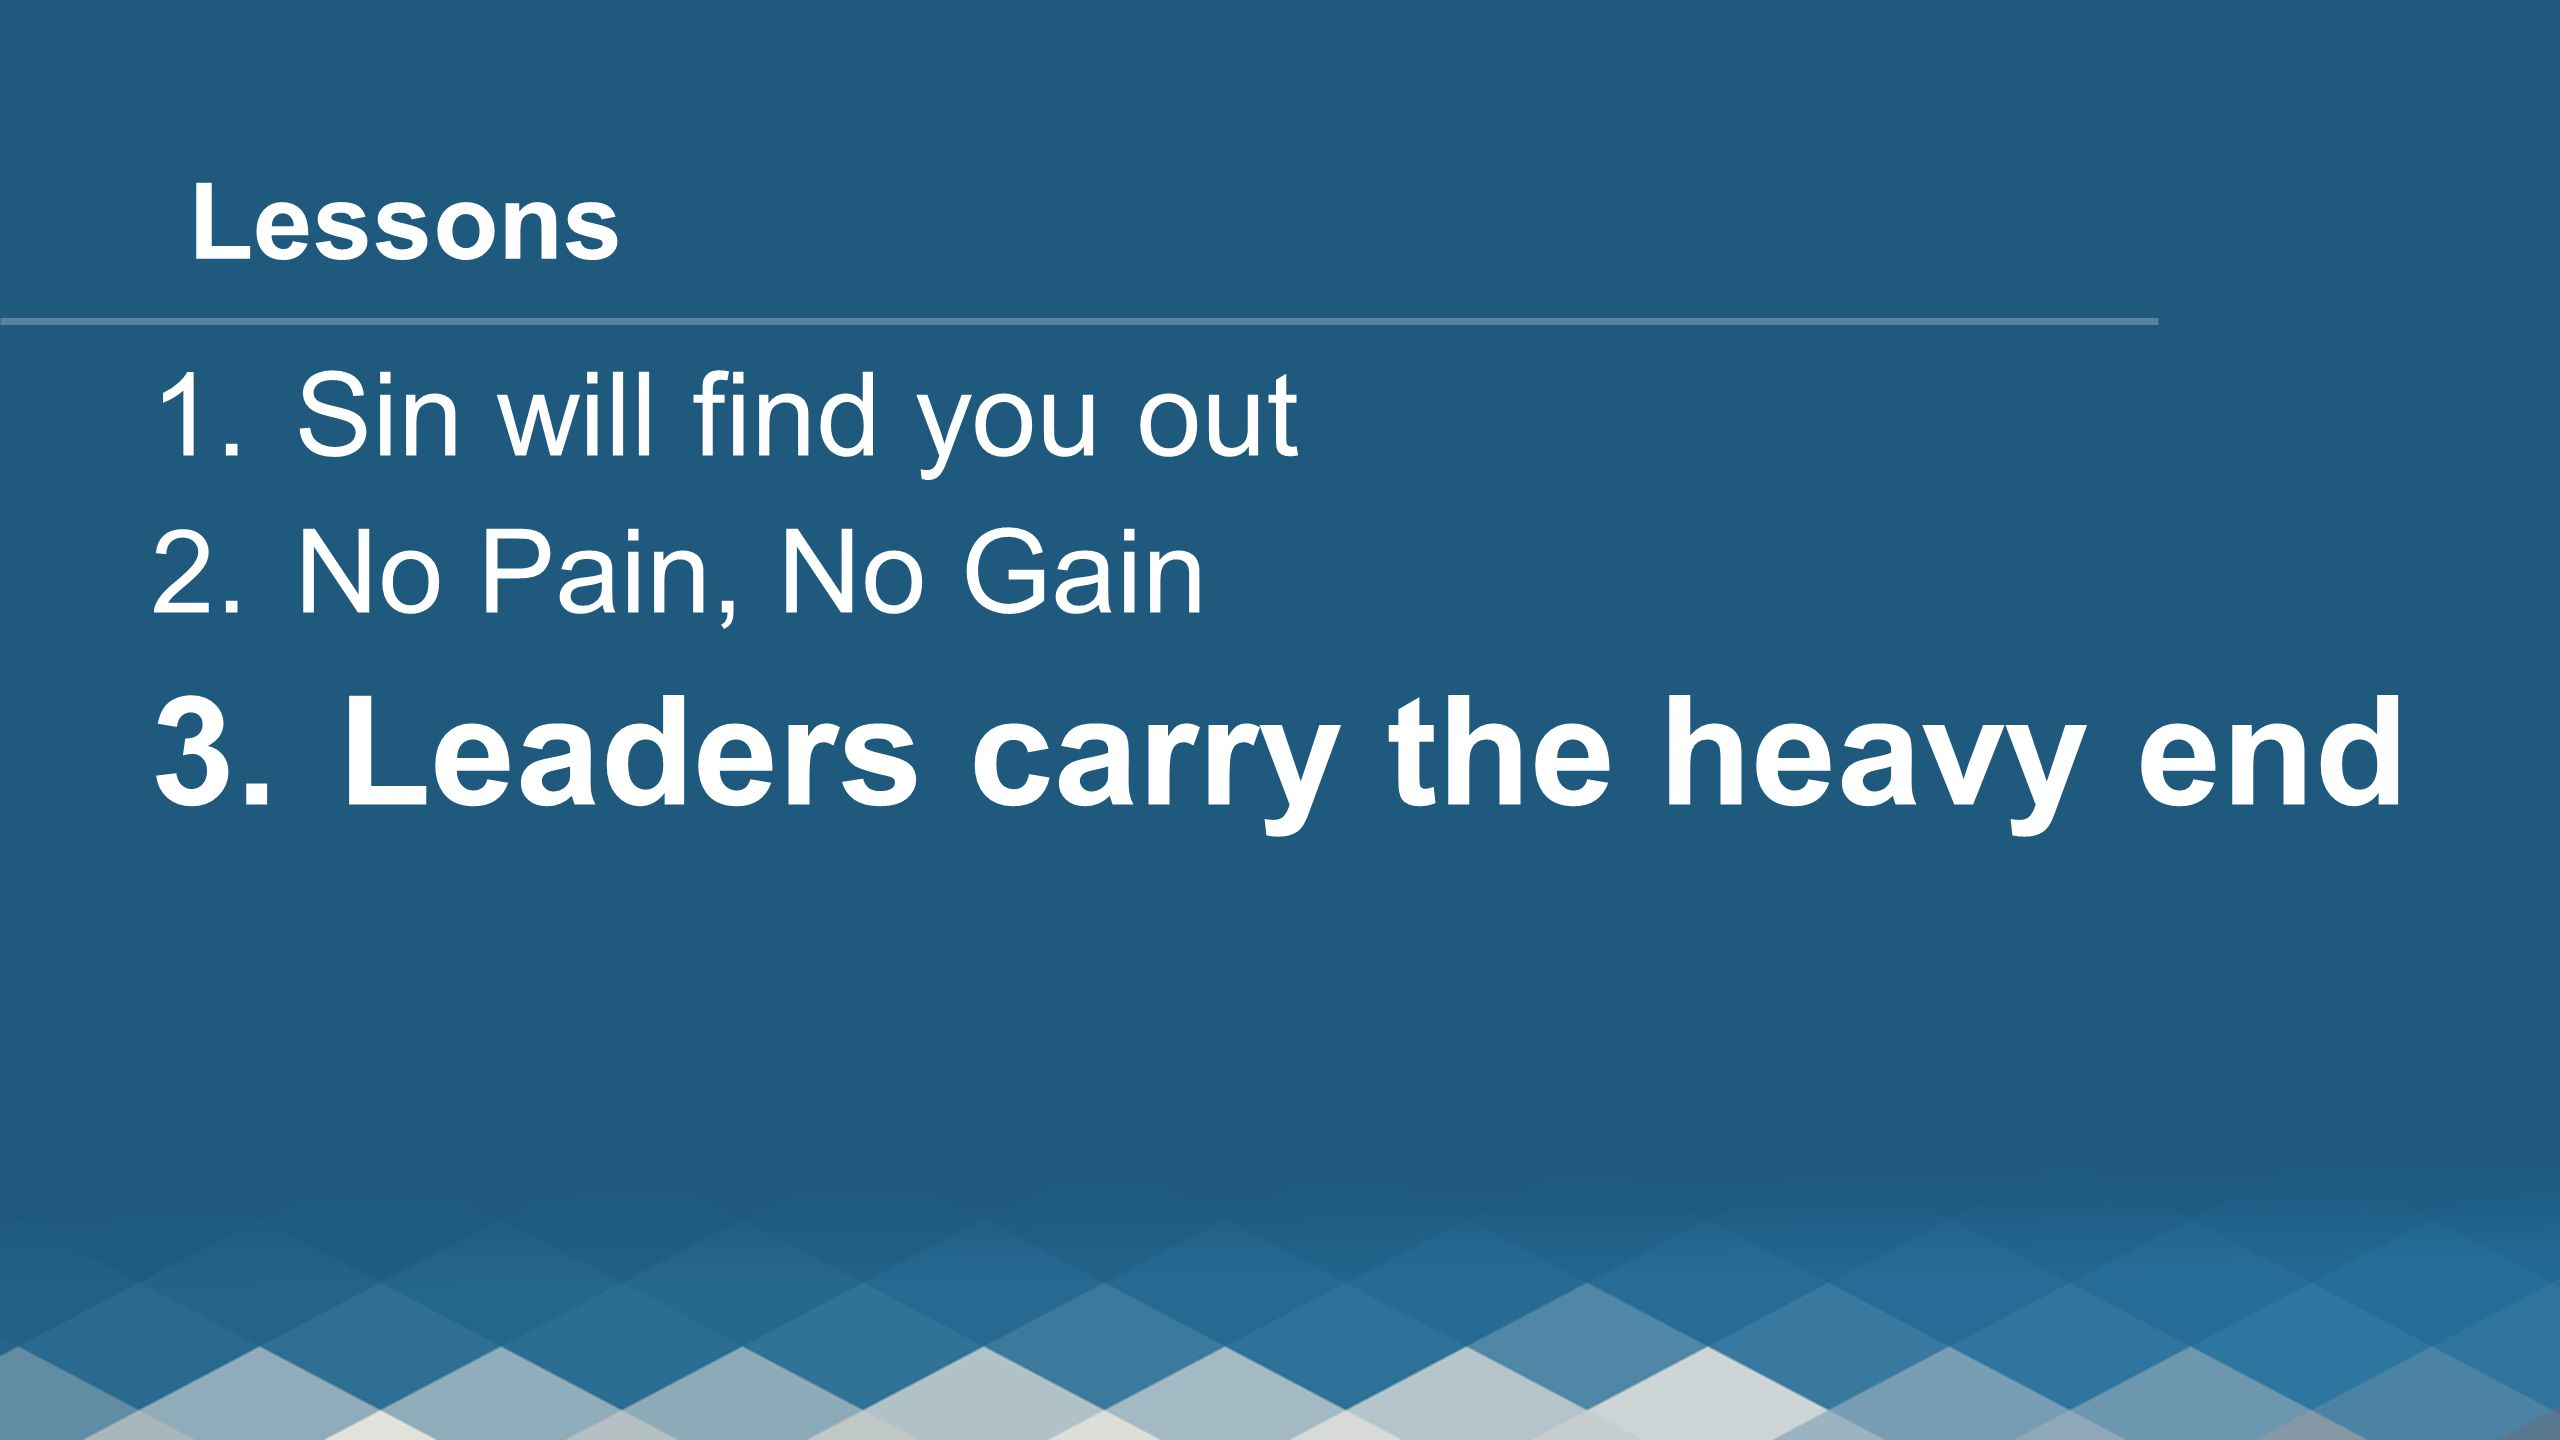 Leaders carry the heavy end